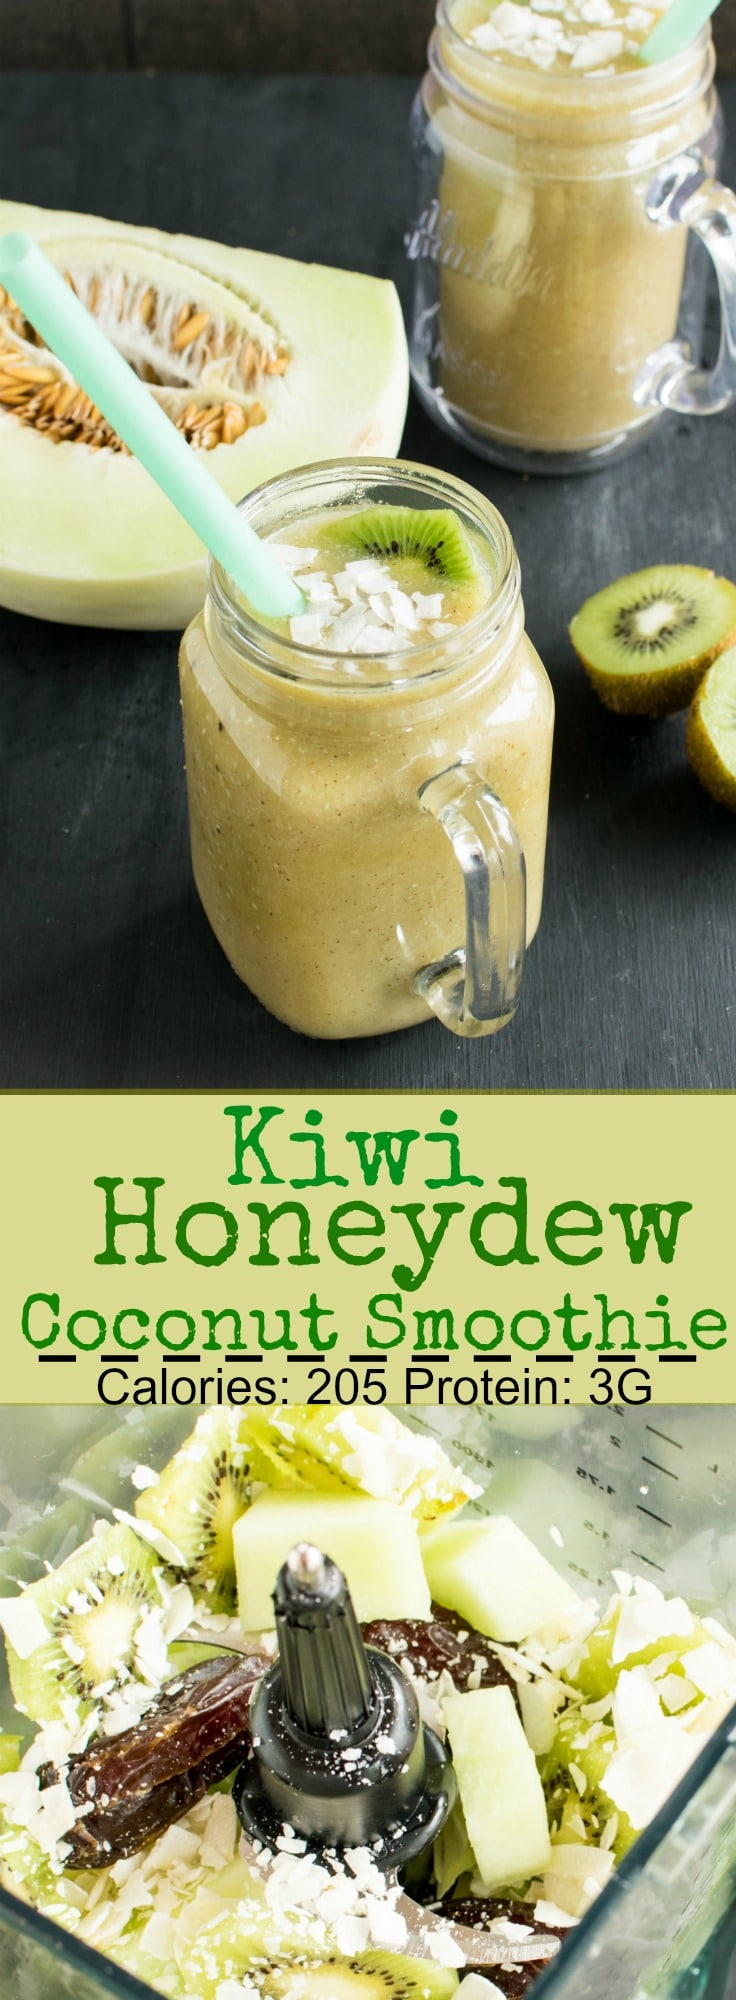 Kiwi Honeydew Coconut Smoothie | vegan and gluten free refreshment. All you need is only 4 ingredients and a blender | kiipfit.com